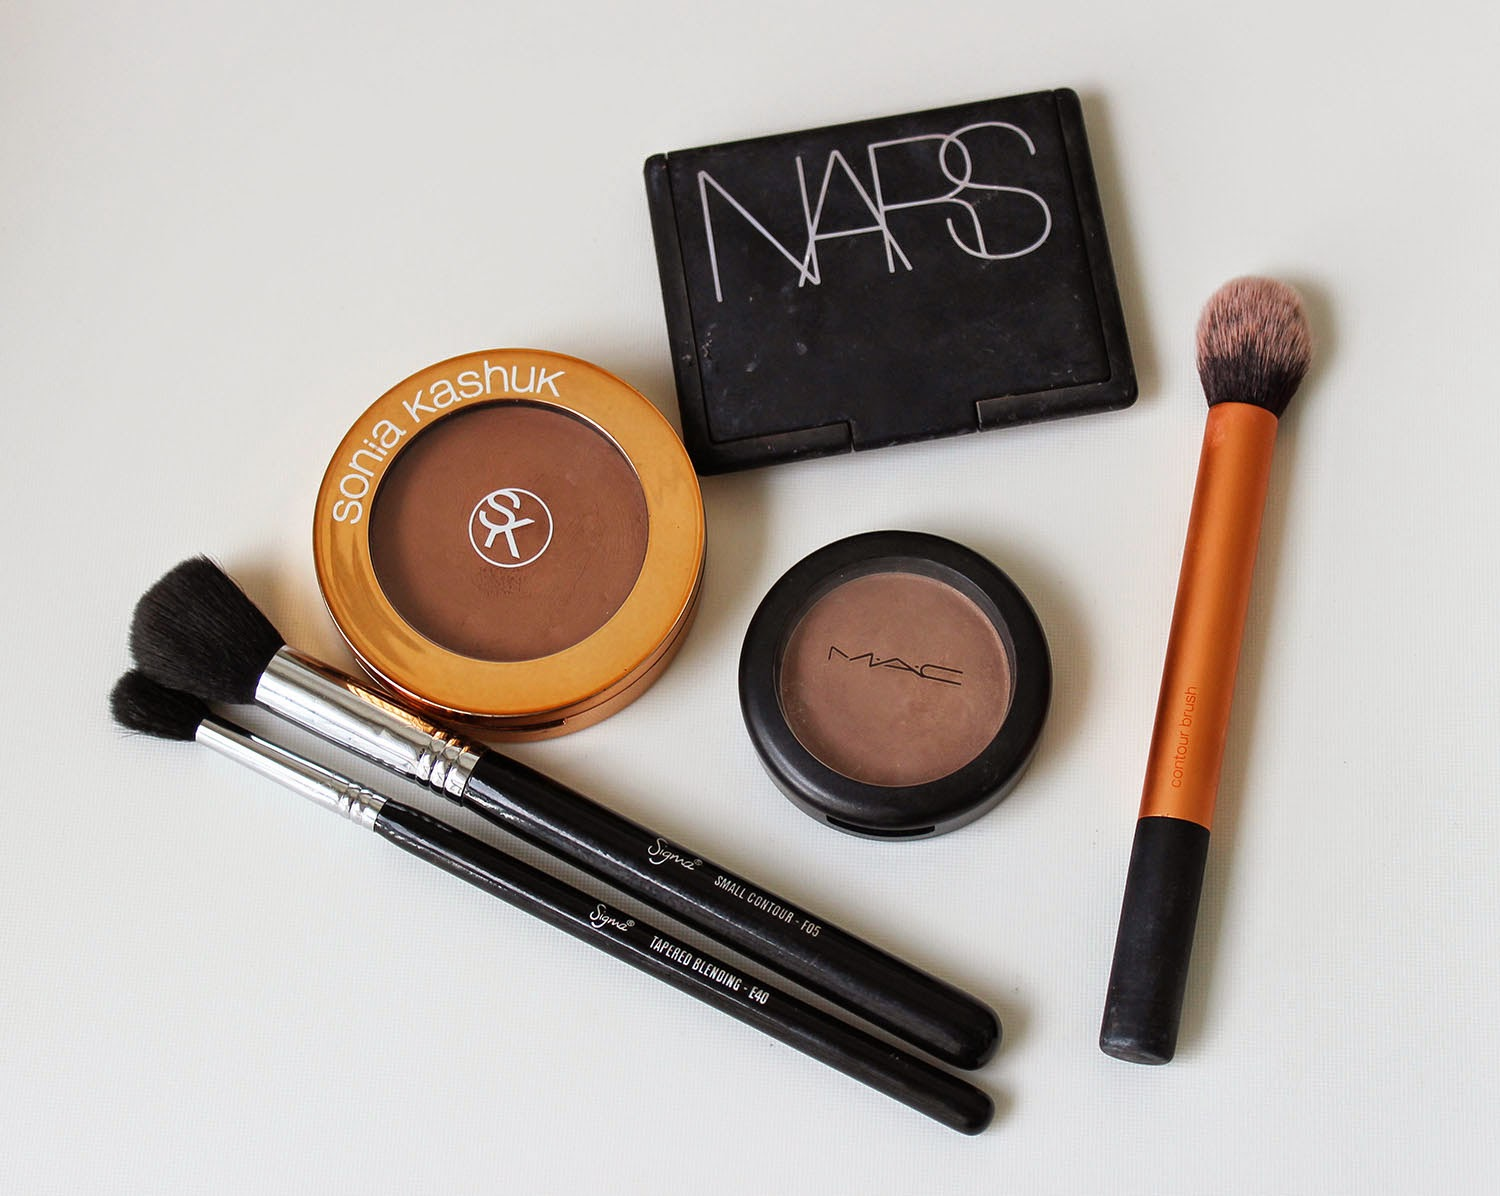 MAC Shaping Powder in Taupe - it's a cool toned brown and great for light skin tones, MAC has other great sculpting powders without the orange tint that you ...